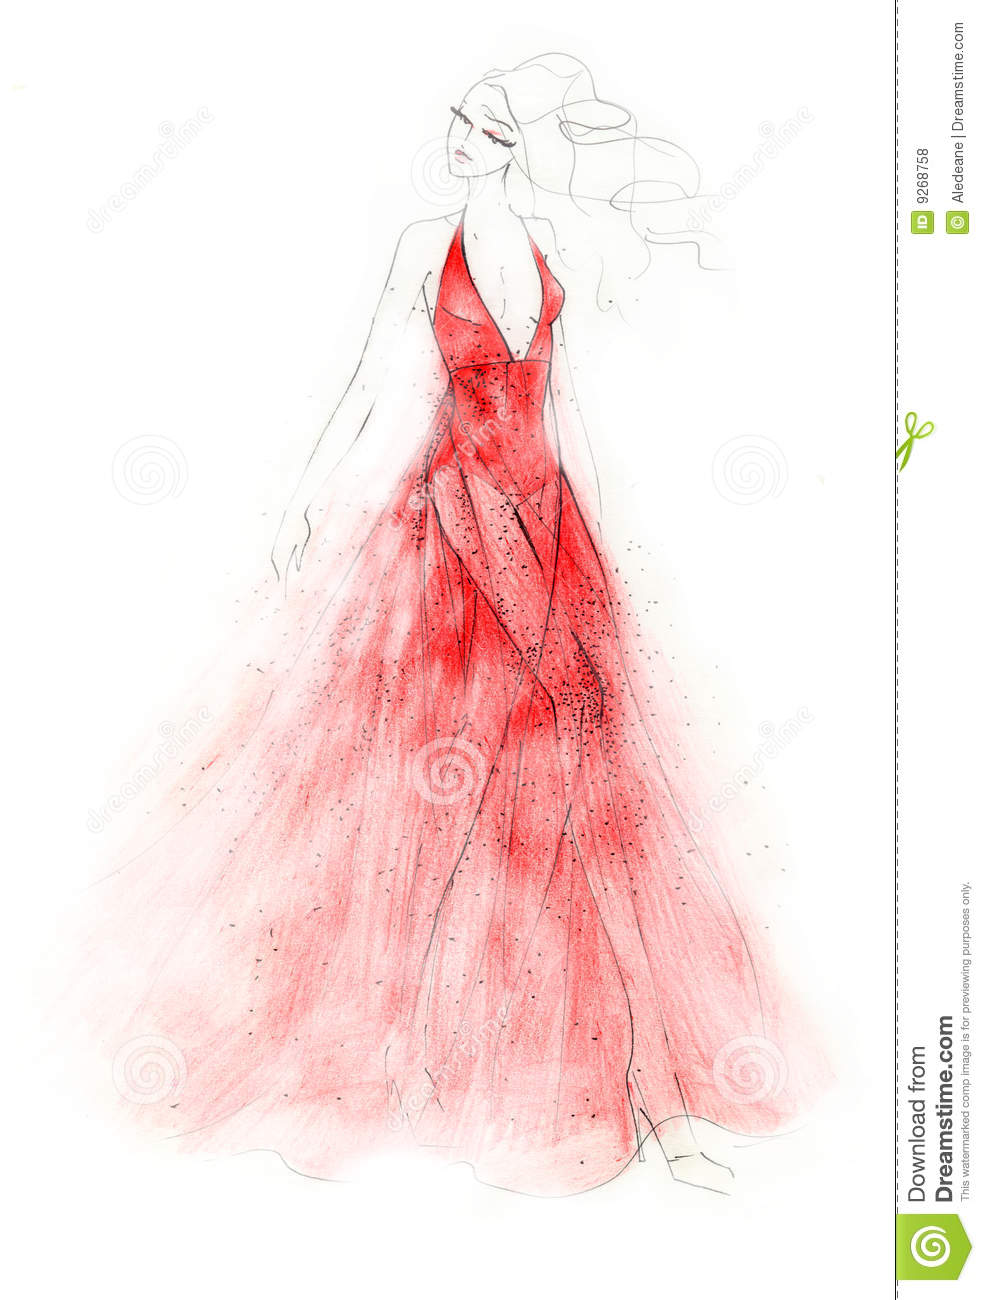 The Red Dress Fashion Illustration Royalty Free Stock